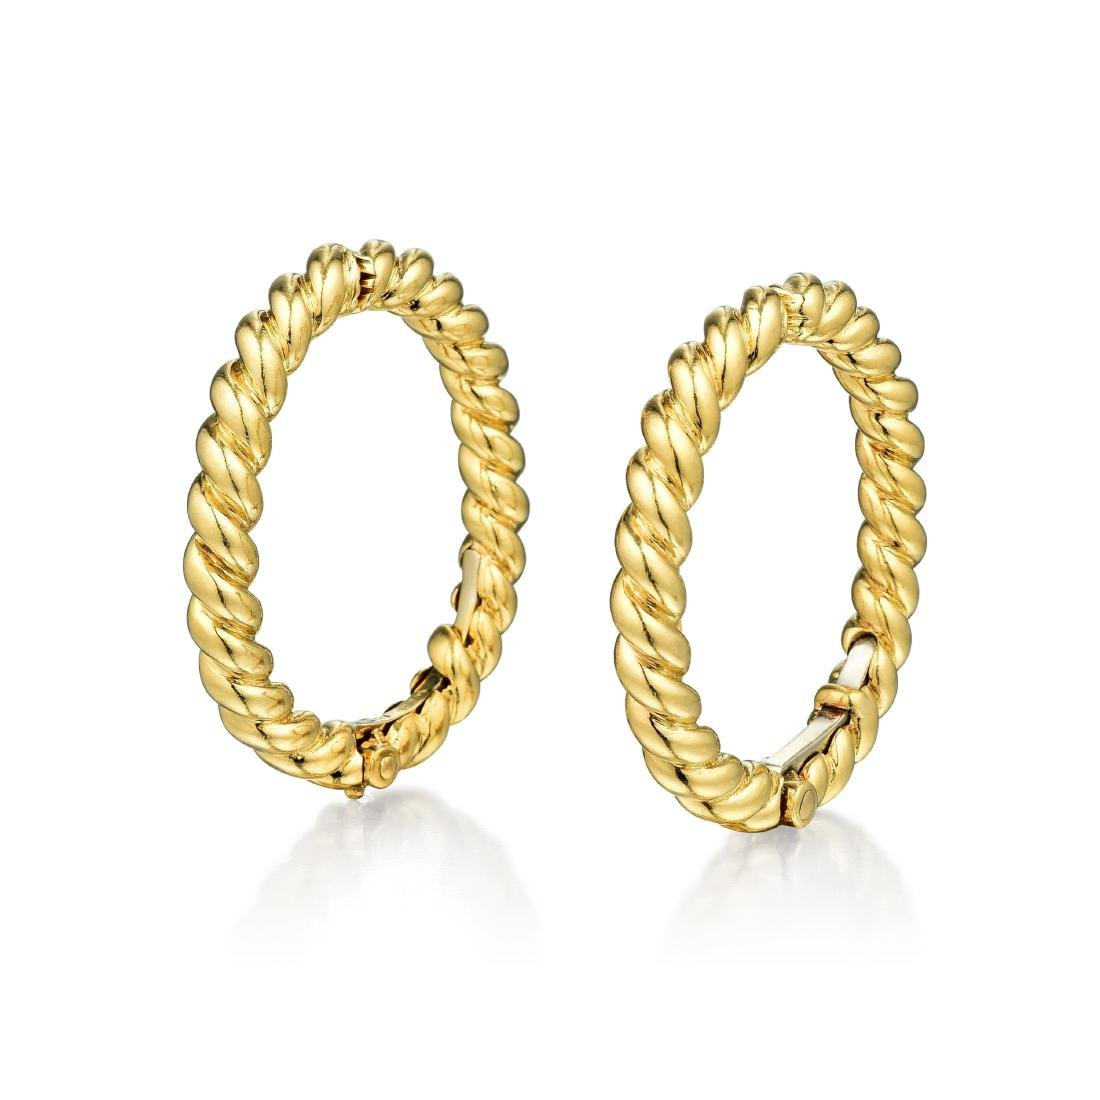 David Webb 18K Gold Hoop Earrings